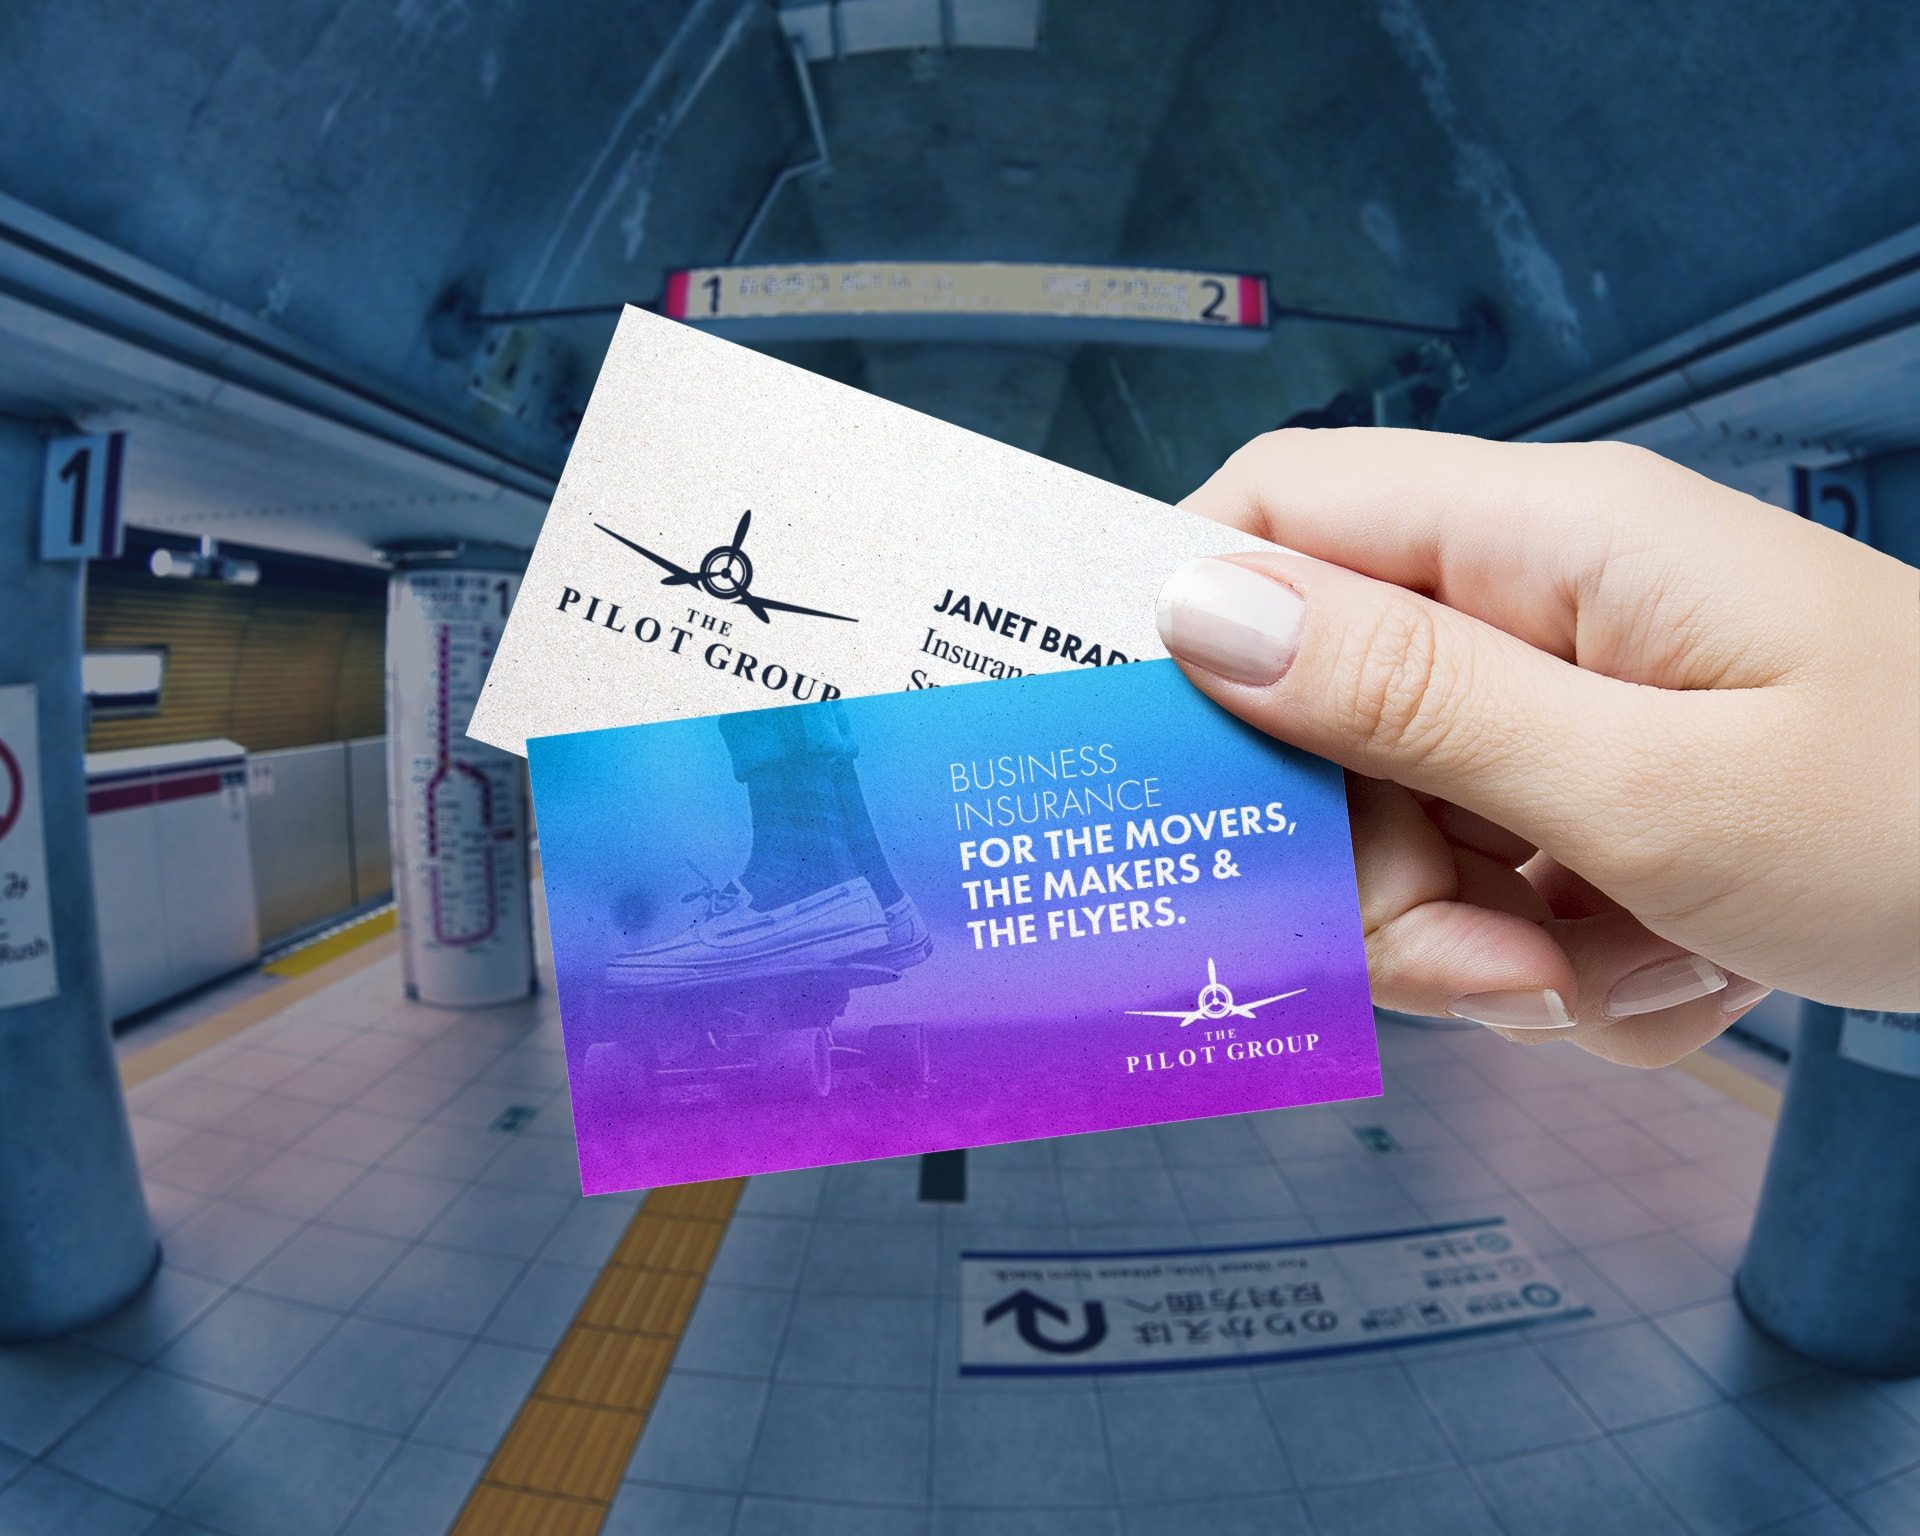 The Pilot Group Business Card design by Chris Nunn, design strategist, in Japanese subway